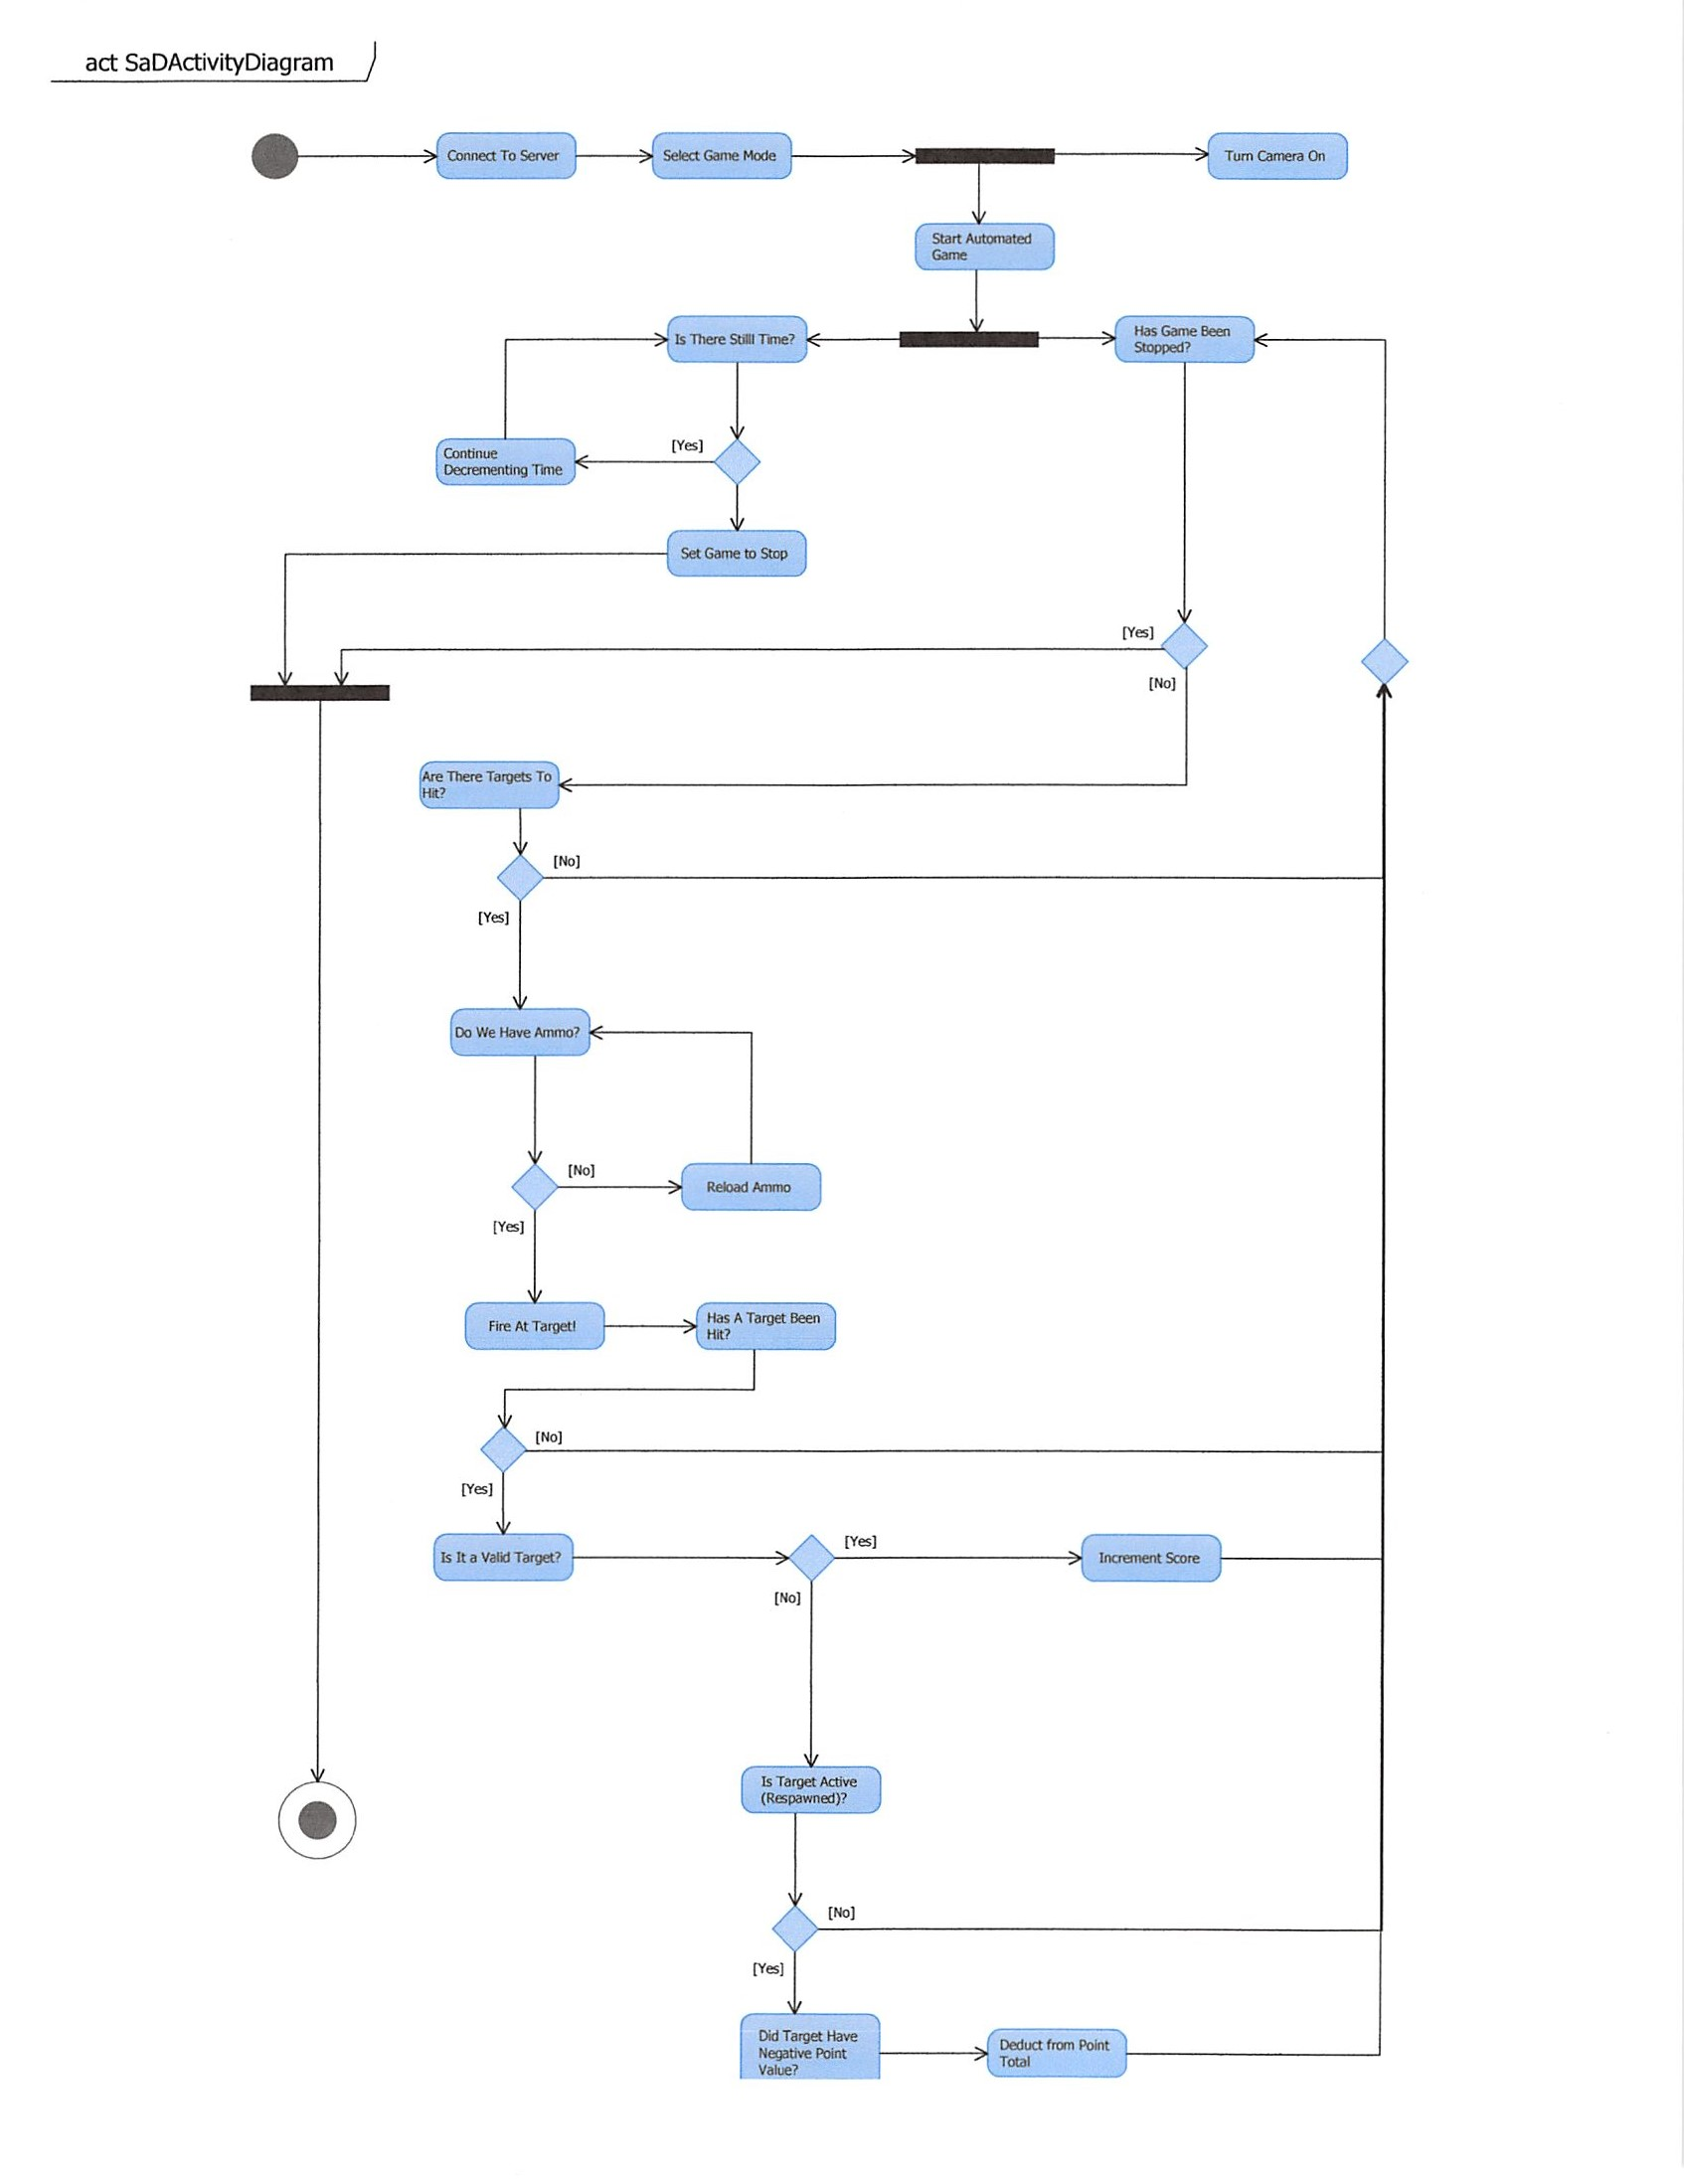 Uml flow diagrams for ezproxy wiring diagrams for three way switches funky wiki diagram ornament diagram wiring ideas ompibinfo act activitydiagram wiki diagram uml flow diagrams for ezproxy uml flow diagrams for ezproxy ccuart Image collections